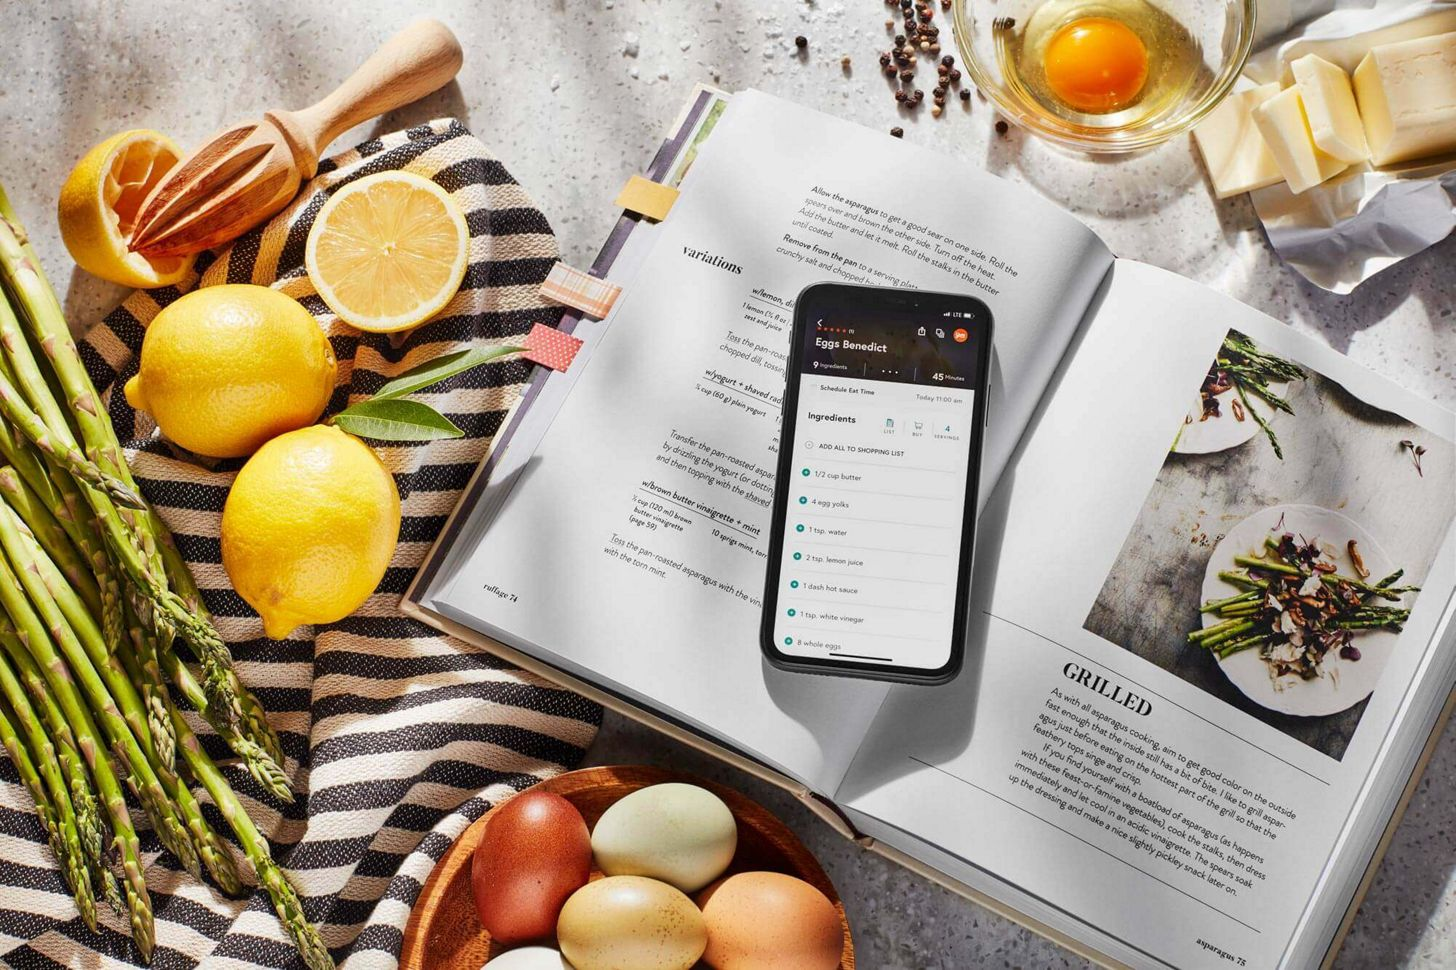 A phone opened up to an eggs benedict recipe resting on an open book's grilled asparagus recipe.